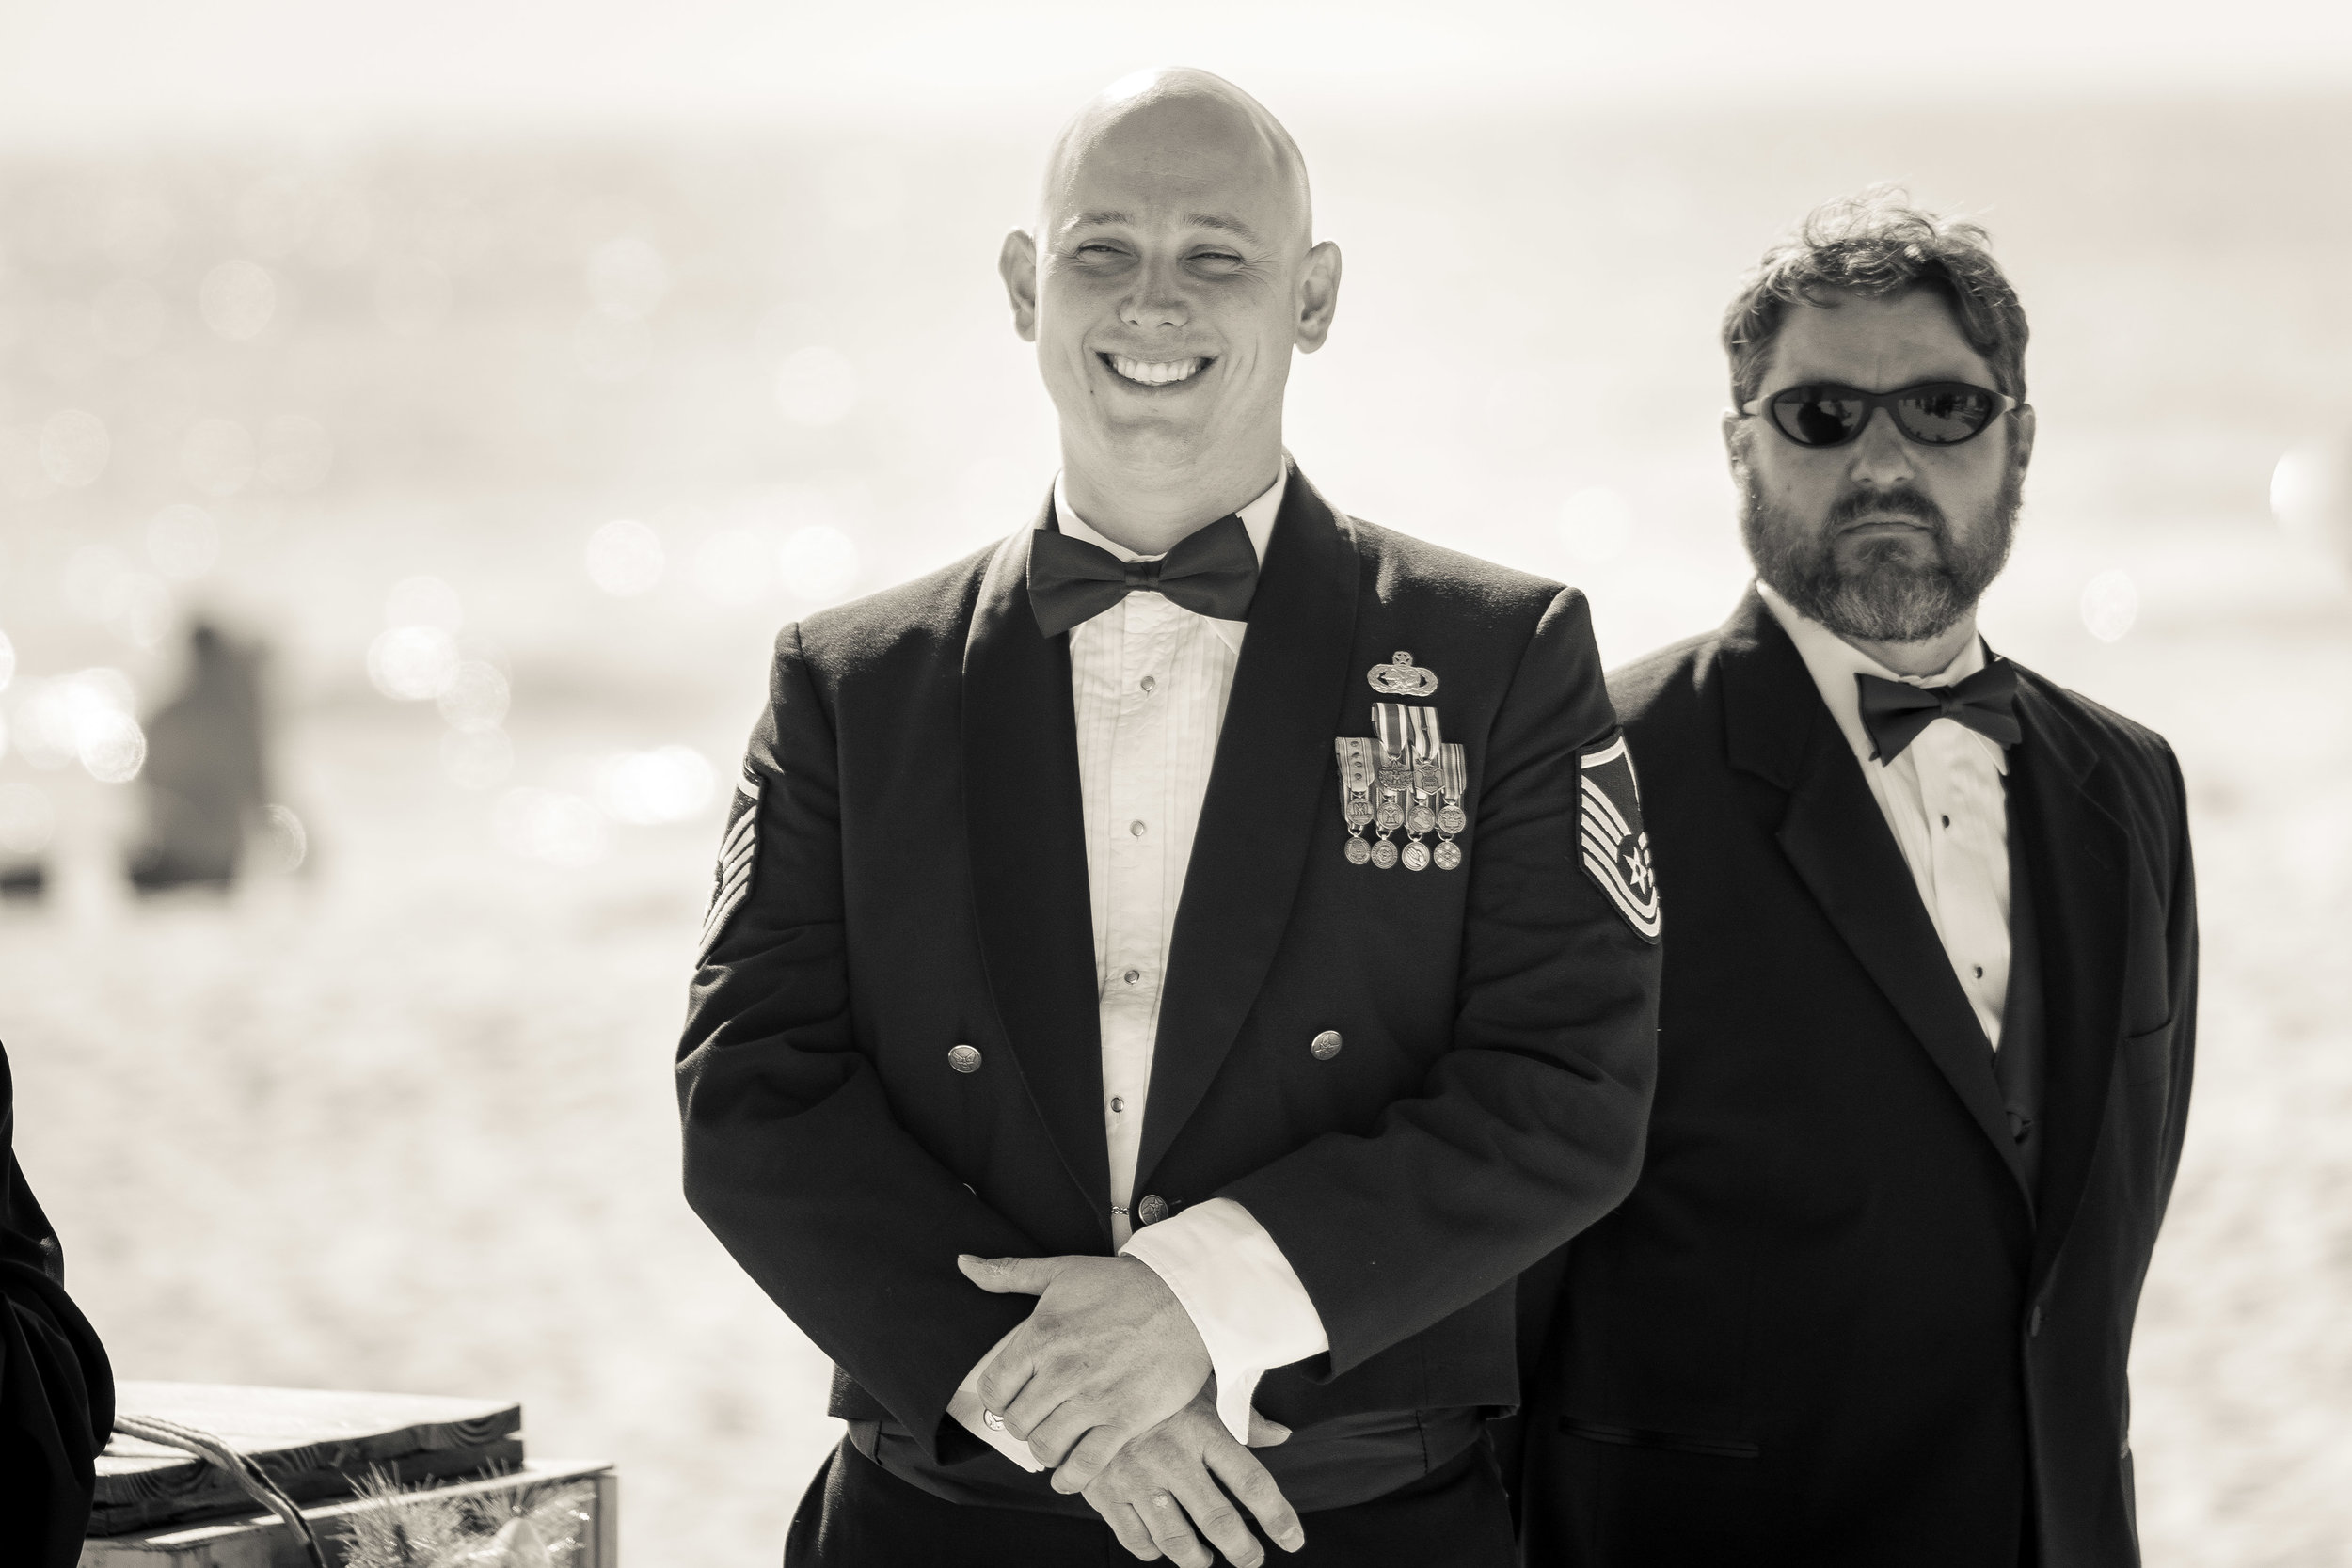 image by wedding photographer adam cotton of groom looking at bride during ceremony